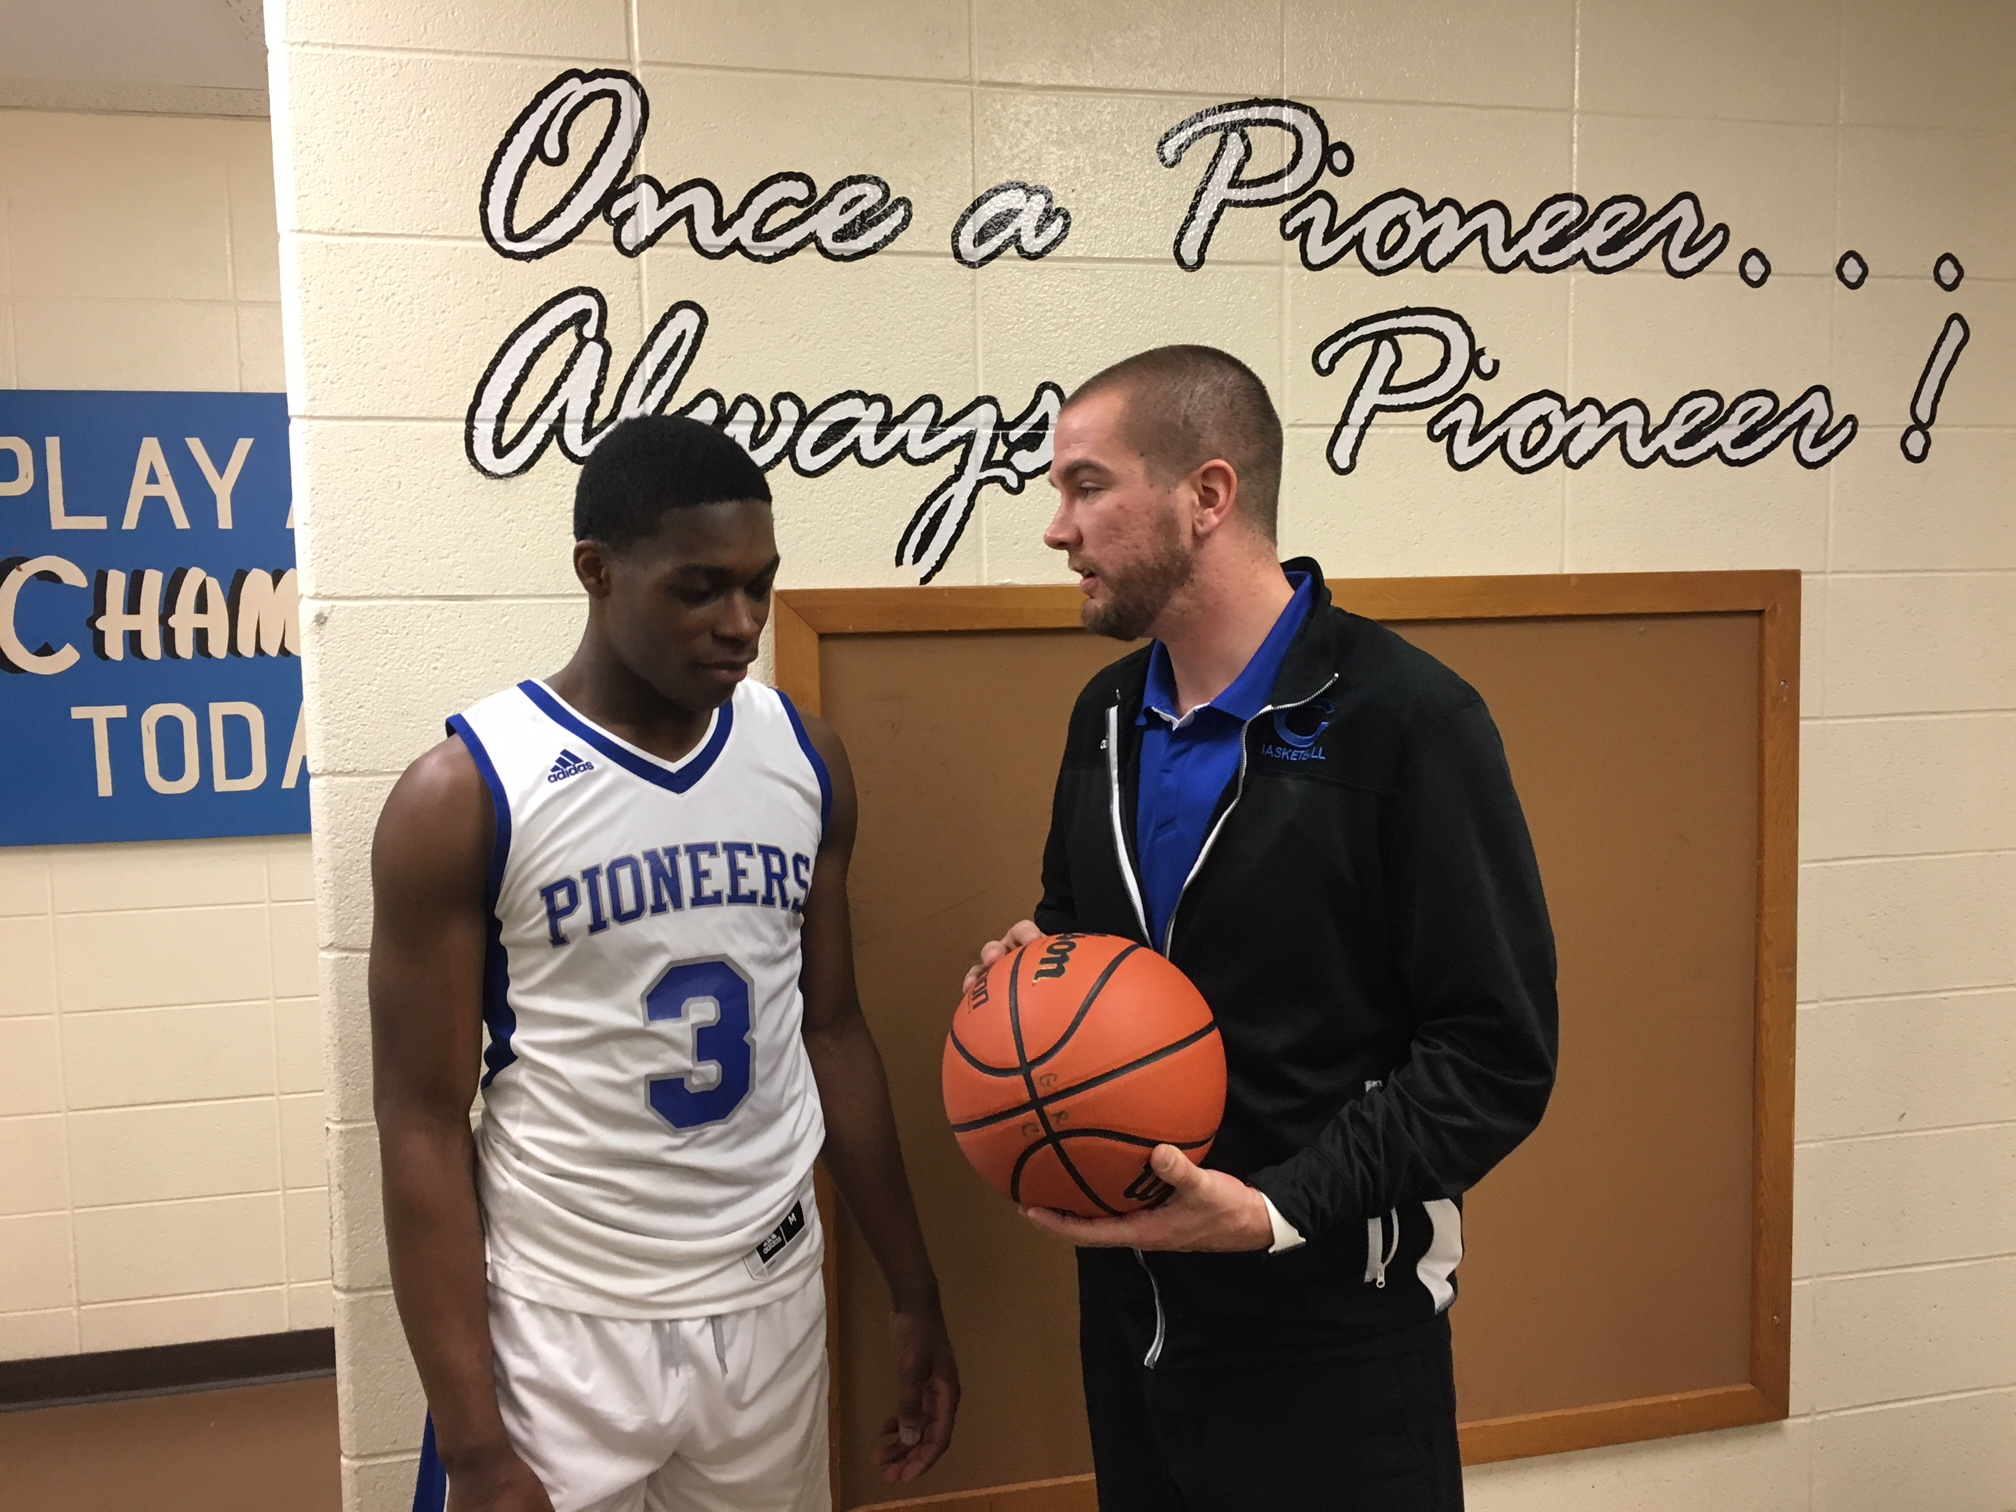 Congrats to Pioneer Senior Jeremy Shannon on reaching 1,000 pts for his HS basketball Career